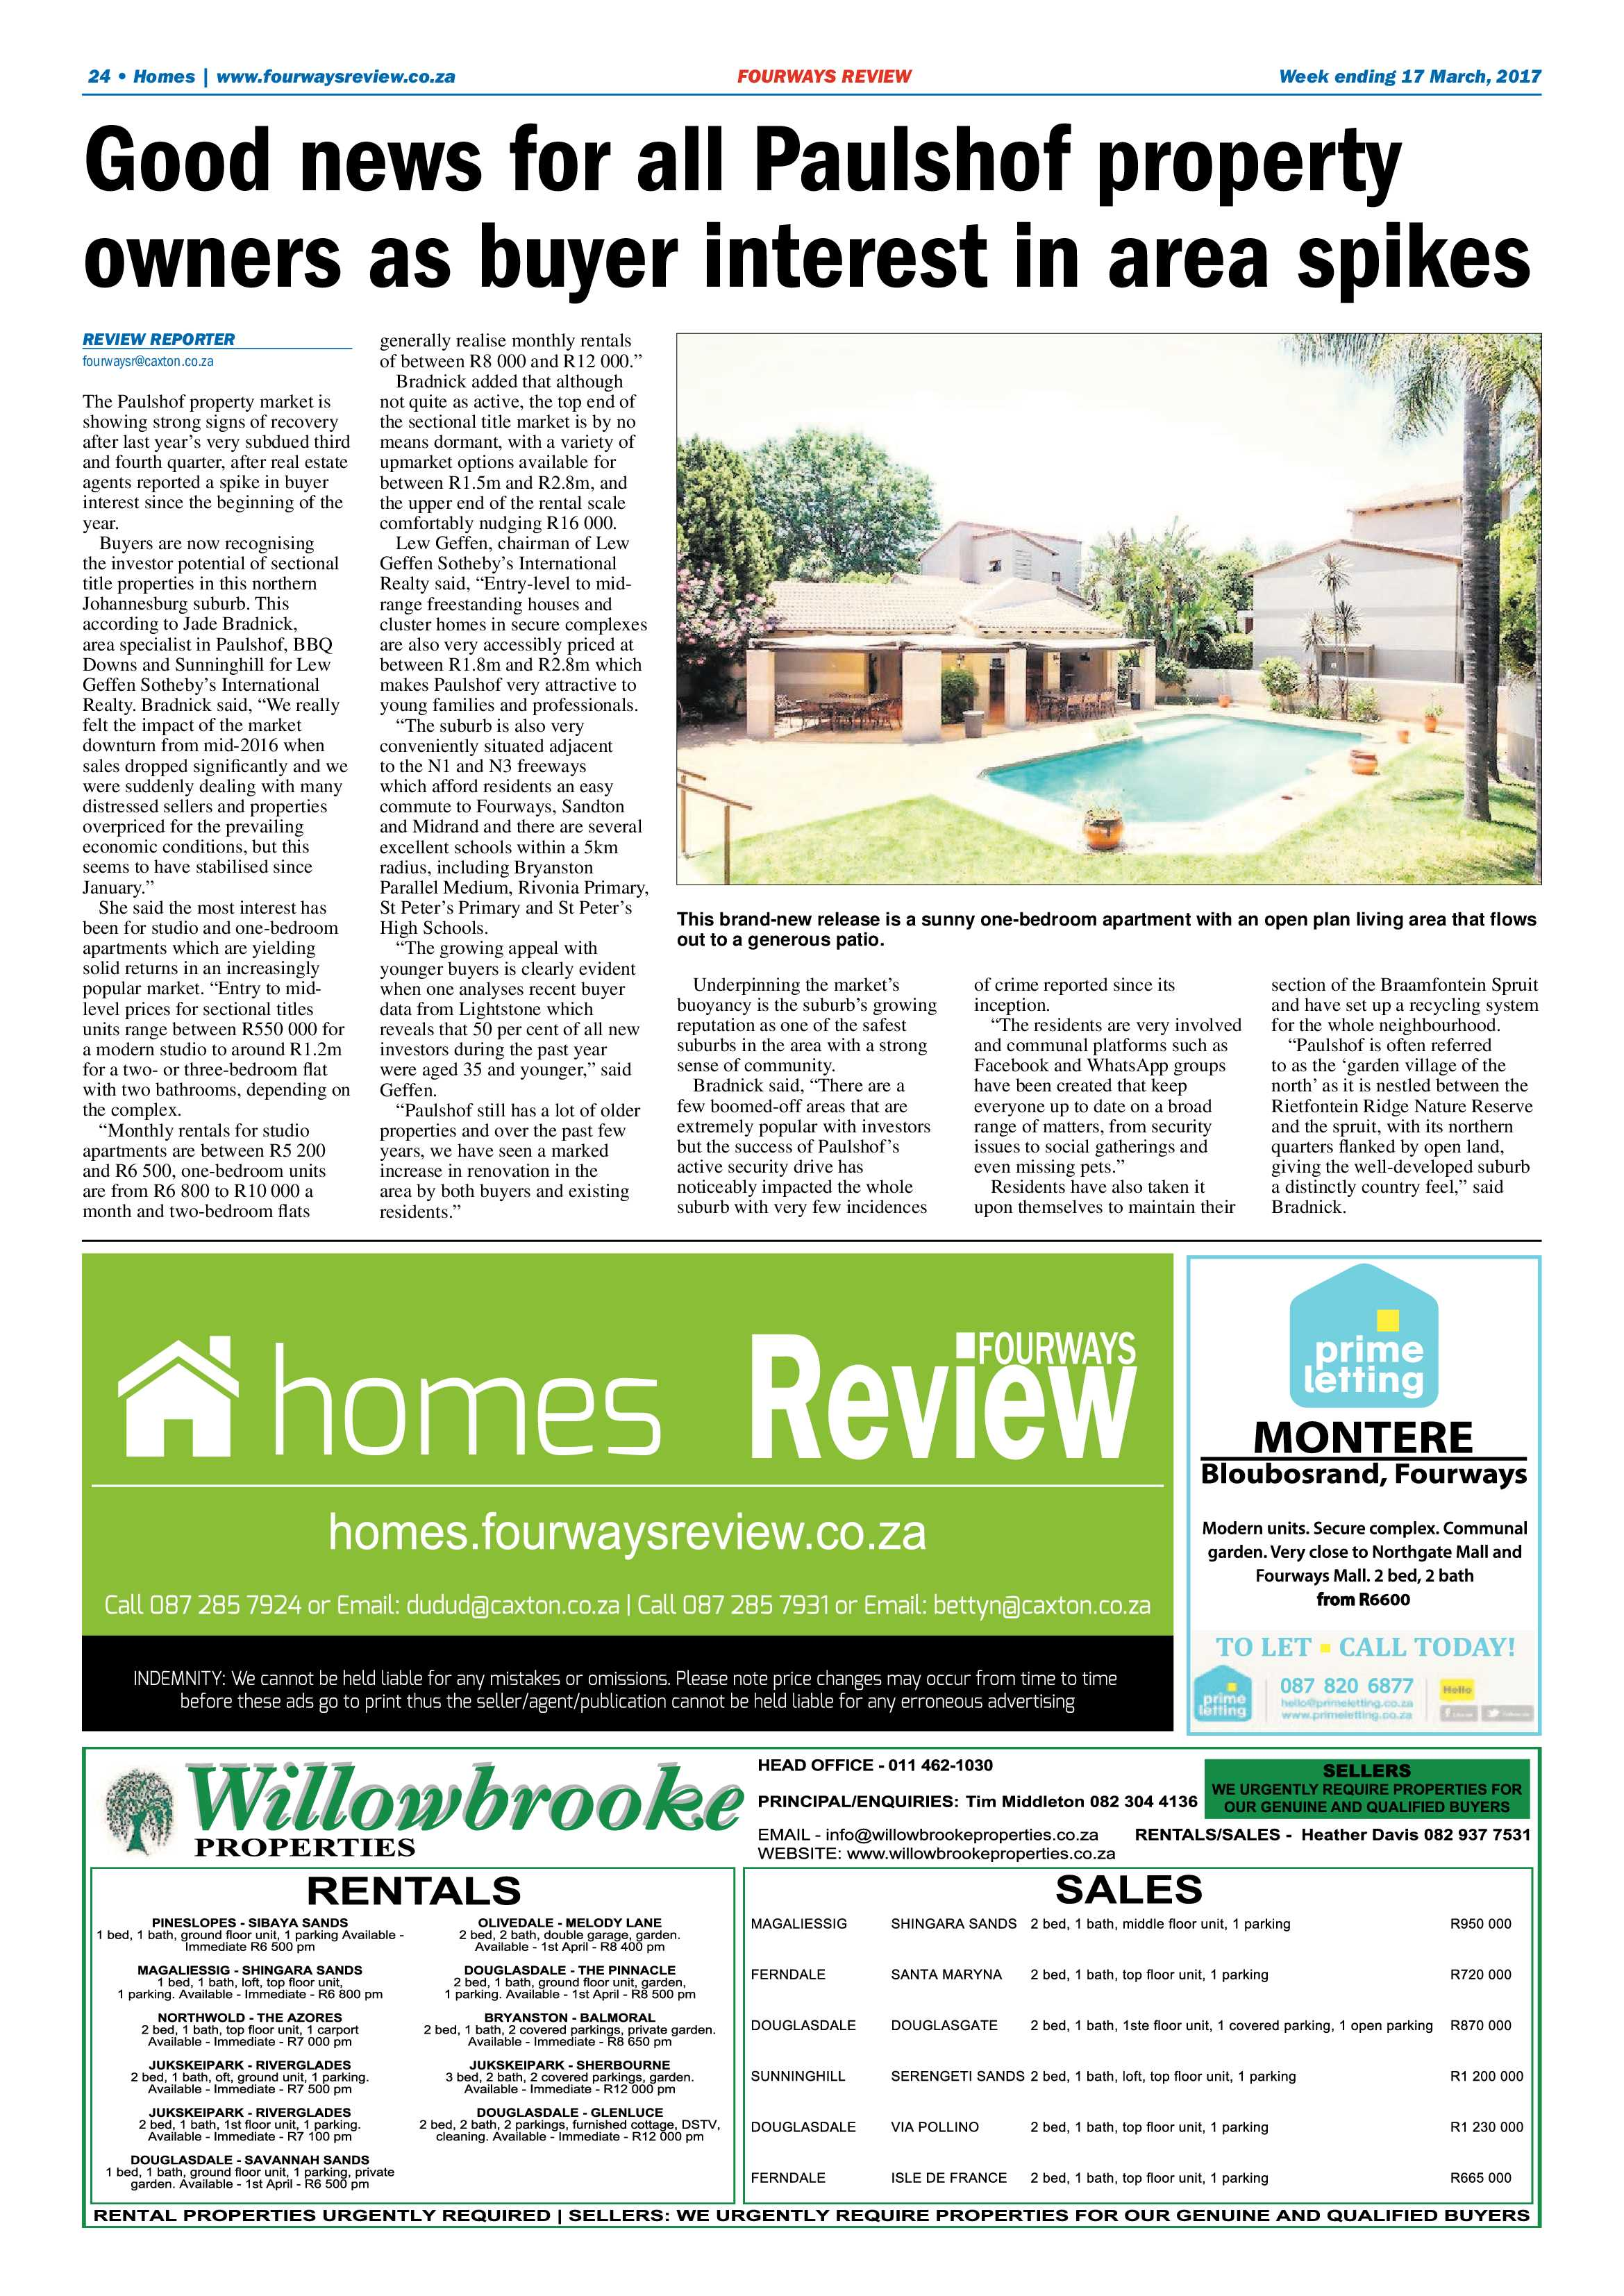 fourways-review-17-march-2017-epapers-page-24